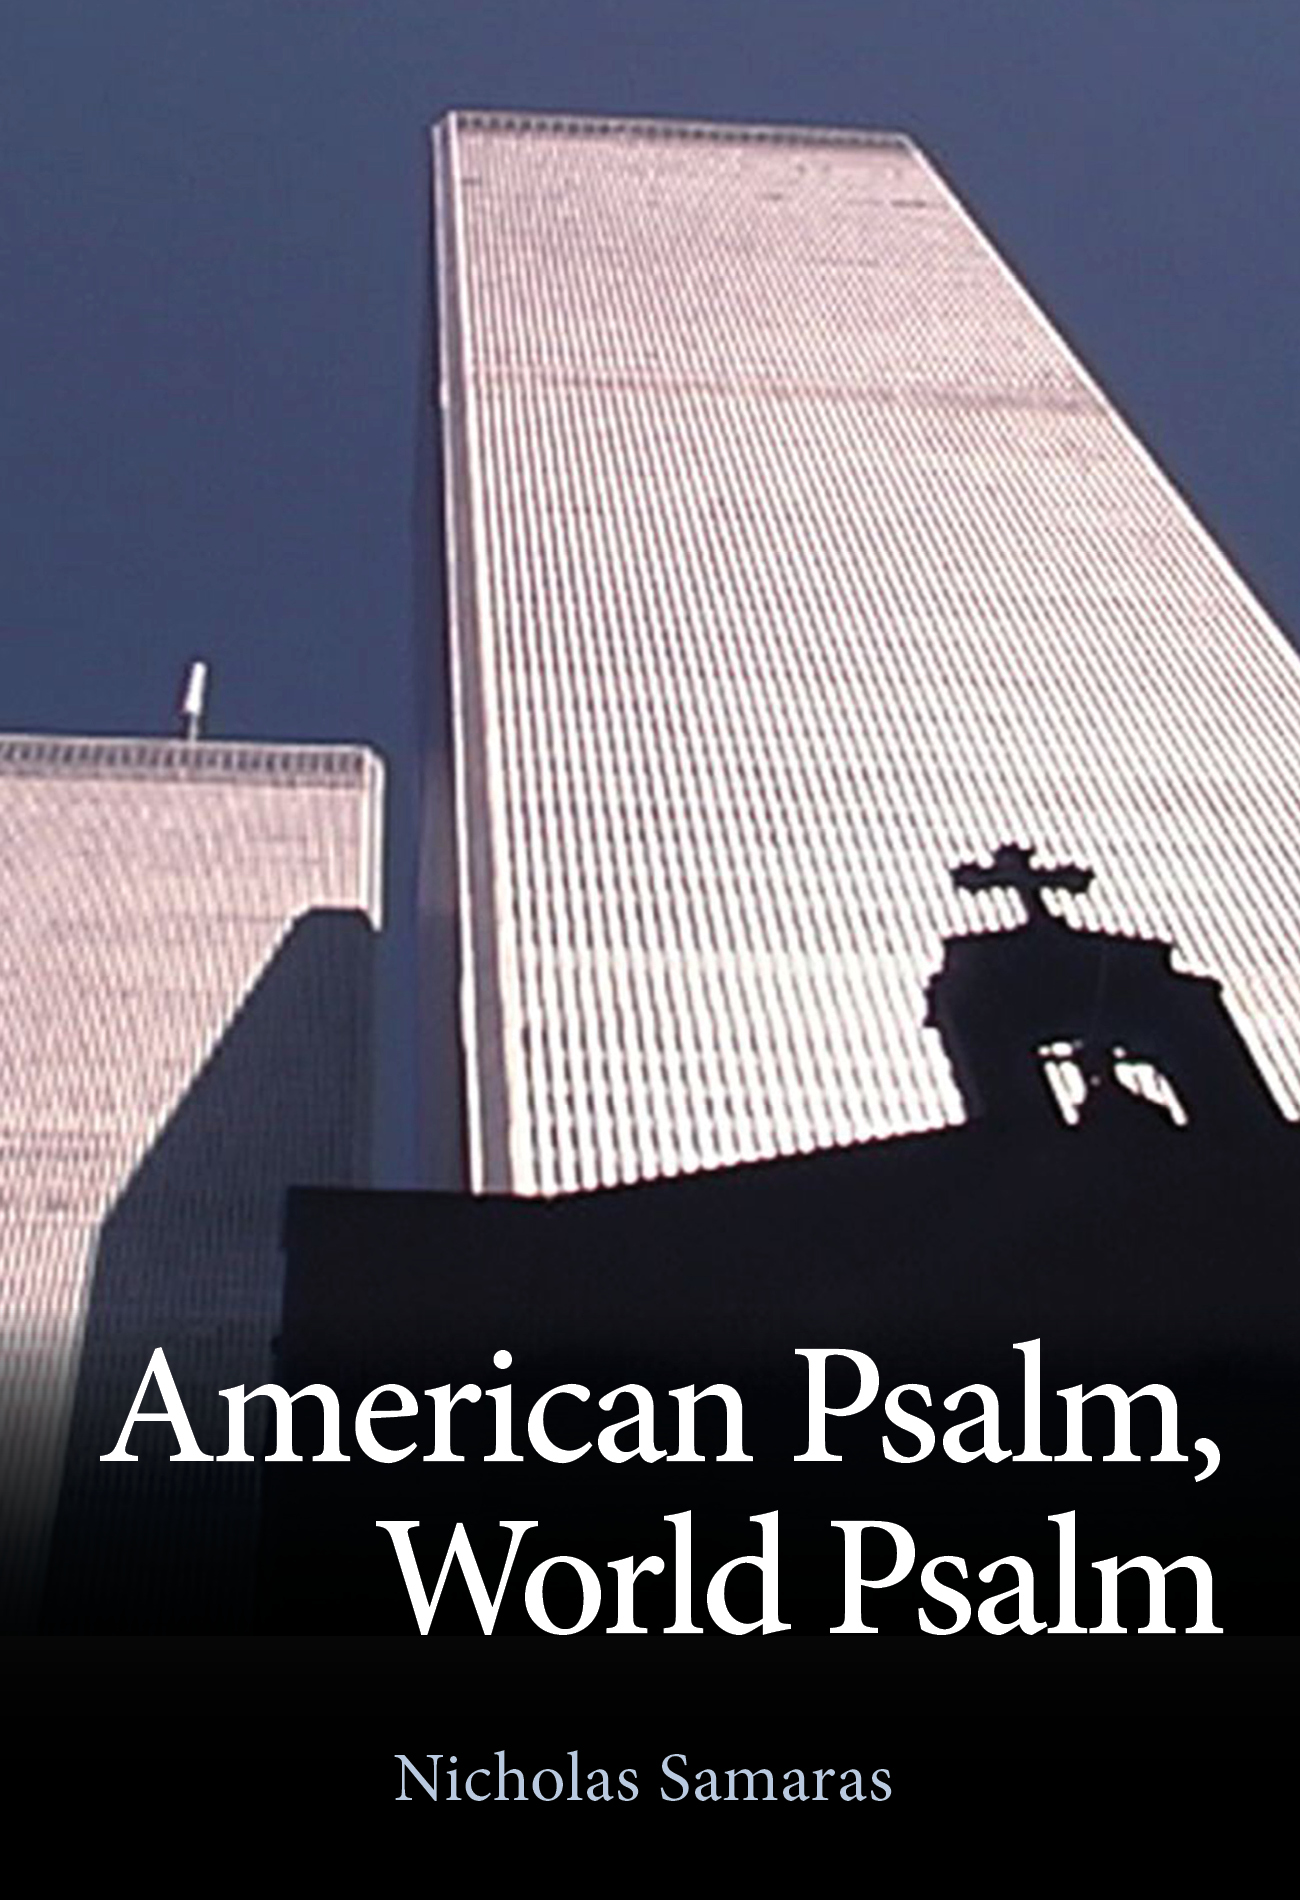 Interview with Author Nicholas Samaras